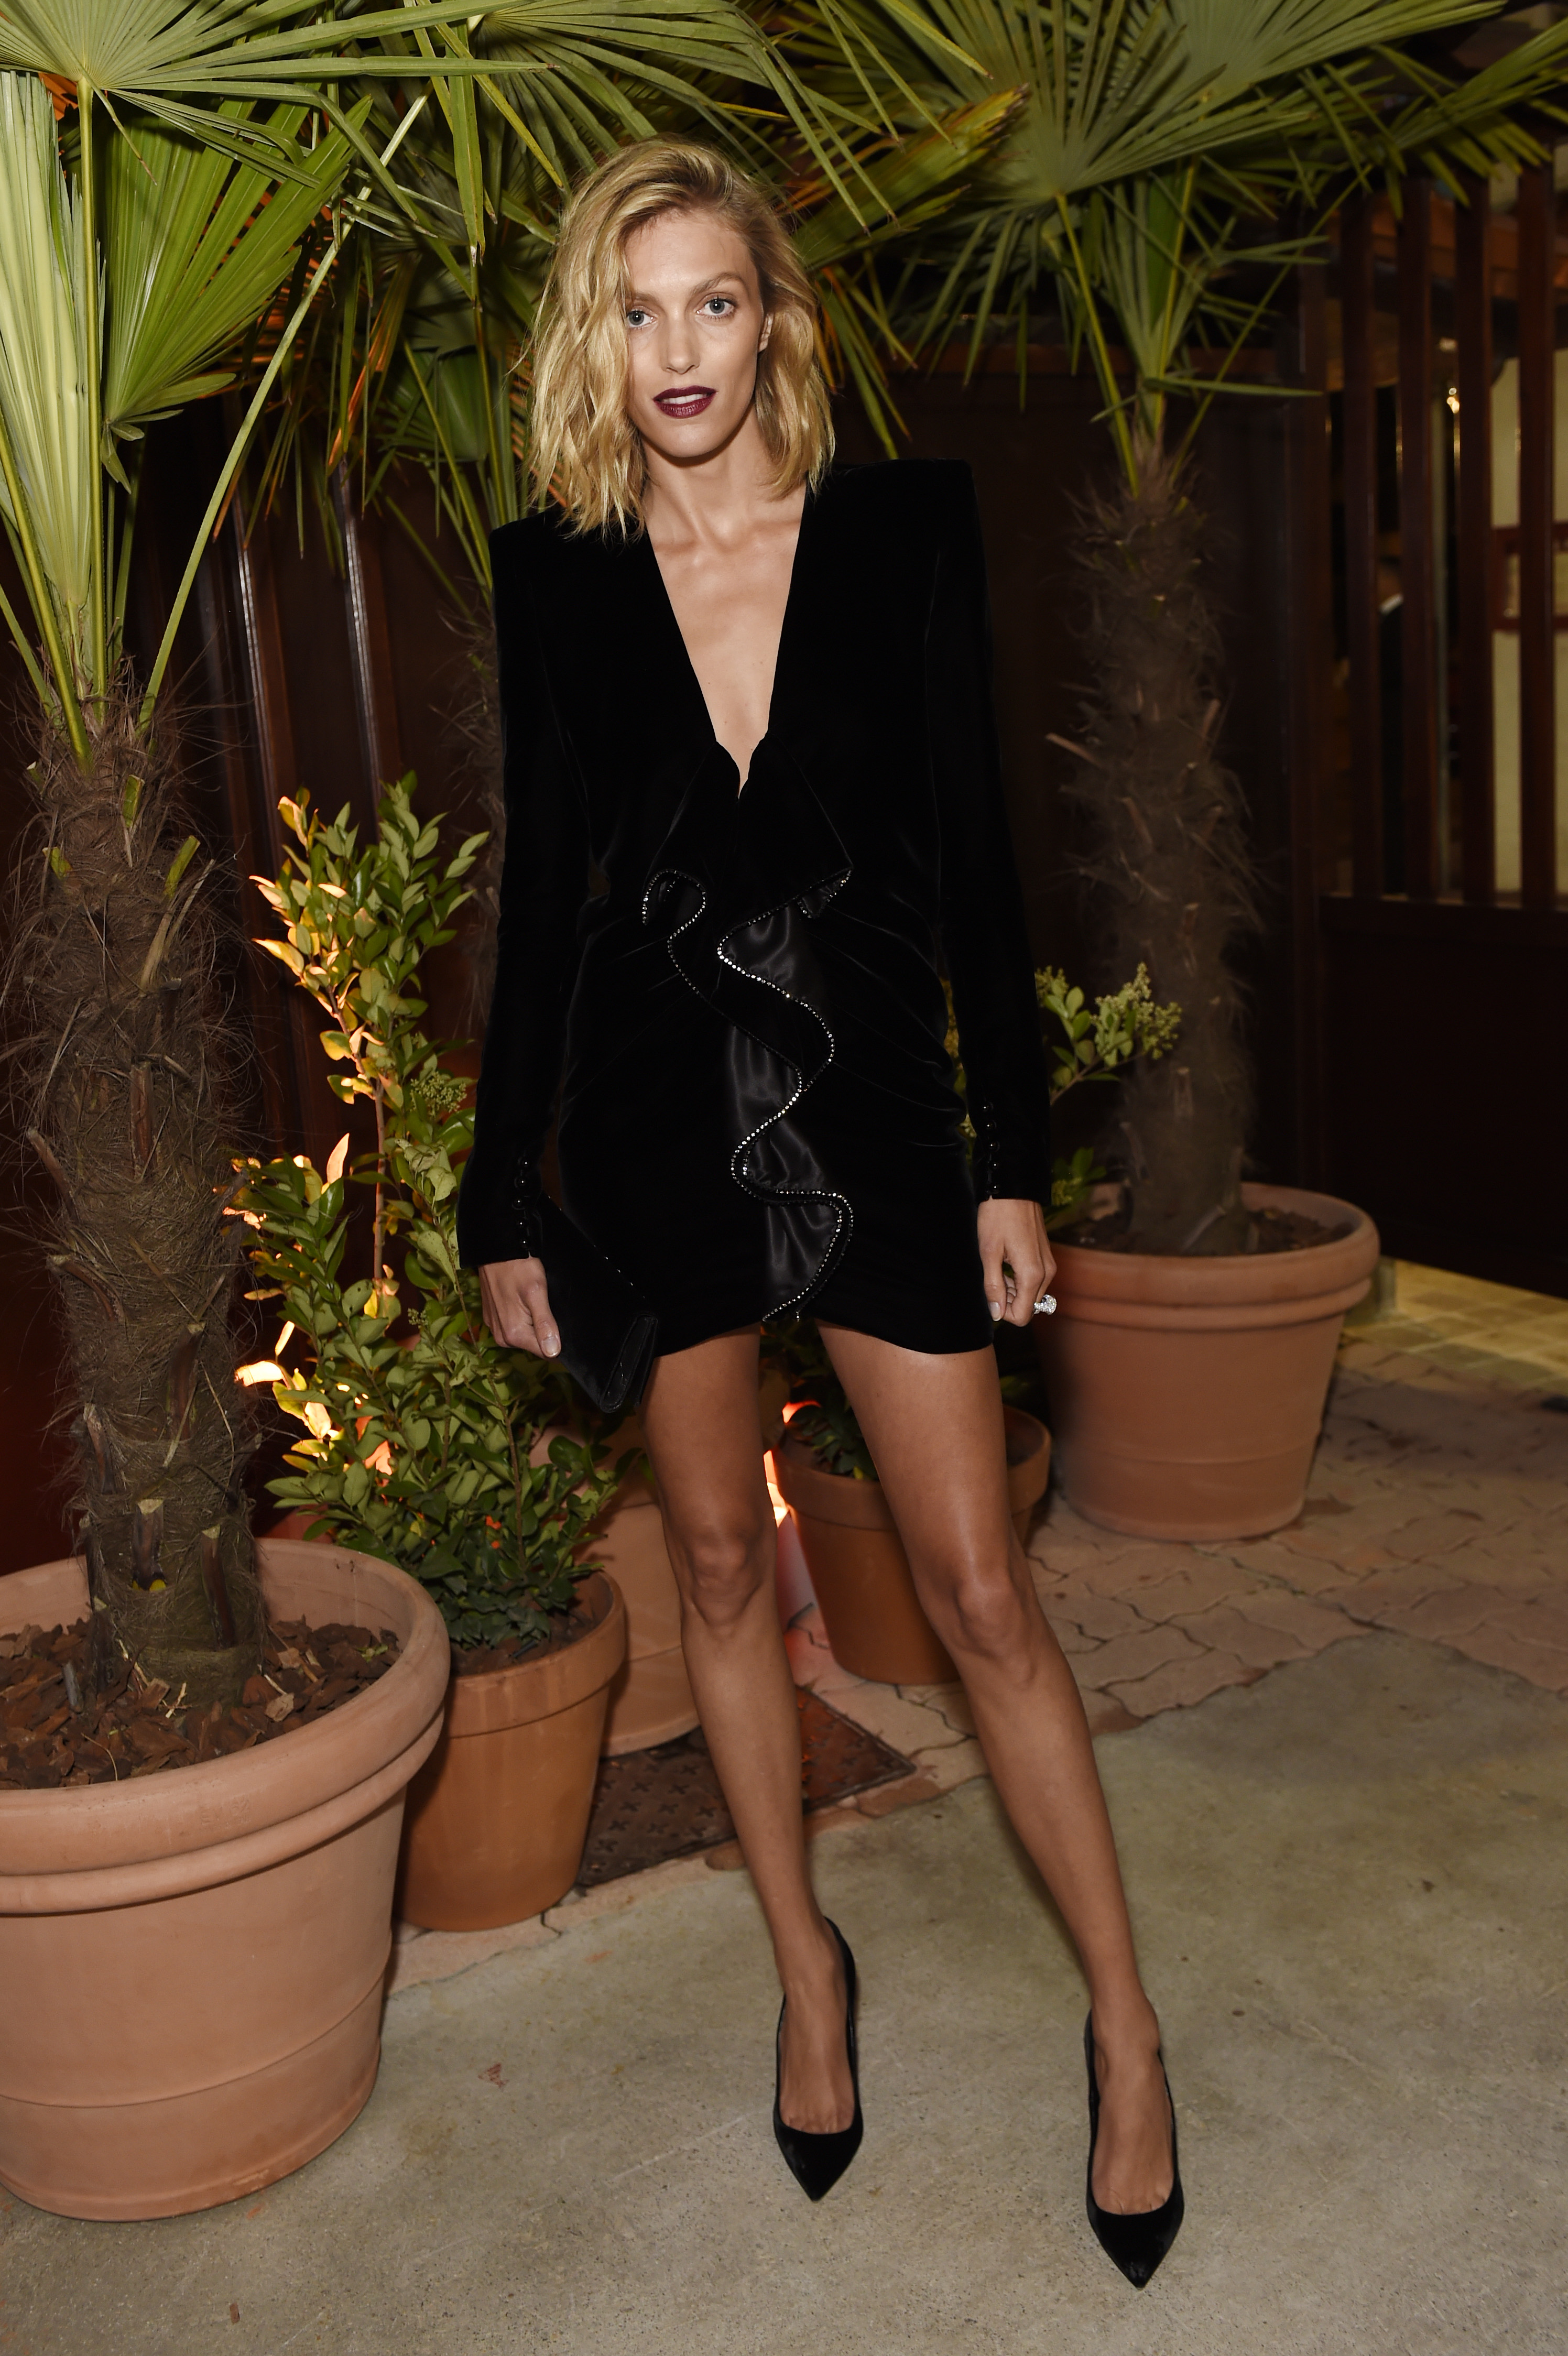 CANNES, FRANCE - MAY 22:  Anja Rubik attends Prada Private Dinner during the 70th annual Cannes Film Festival at Restaurant Fred L'Ecailler on May 22, 2017 in Cannes, France.  (Photo by Antony Jones/Getty Images for Prada)